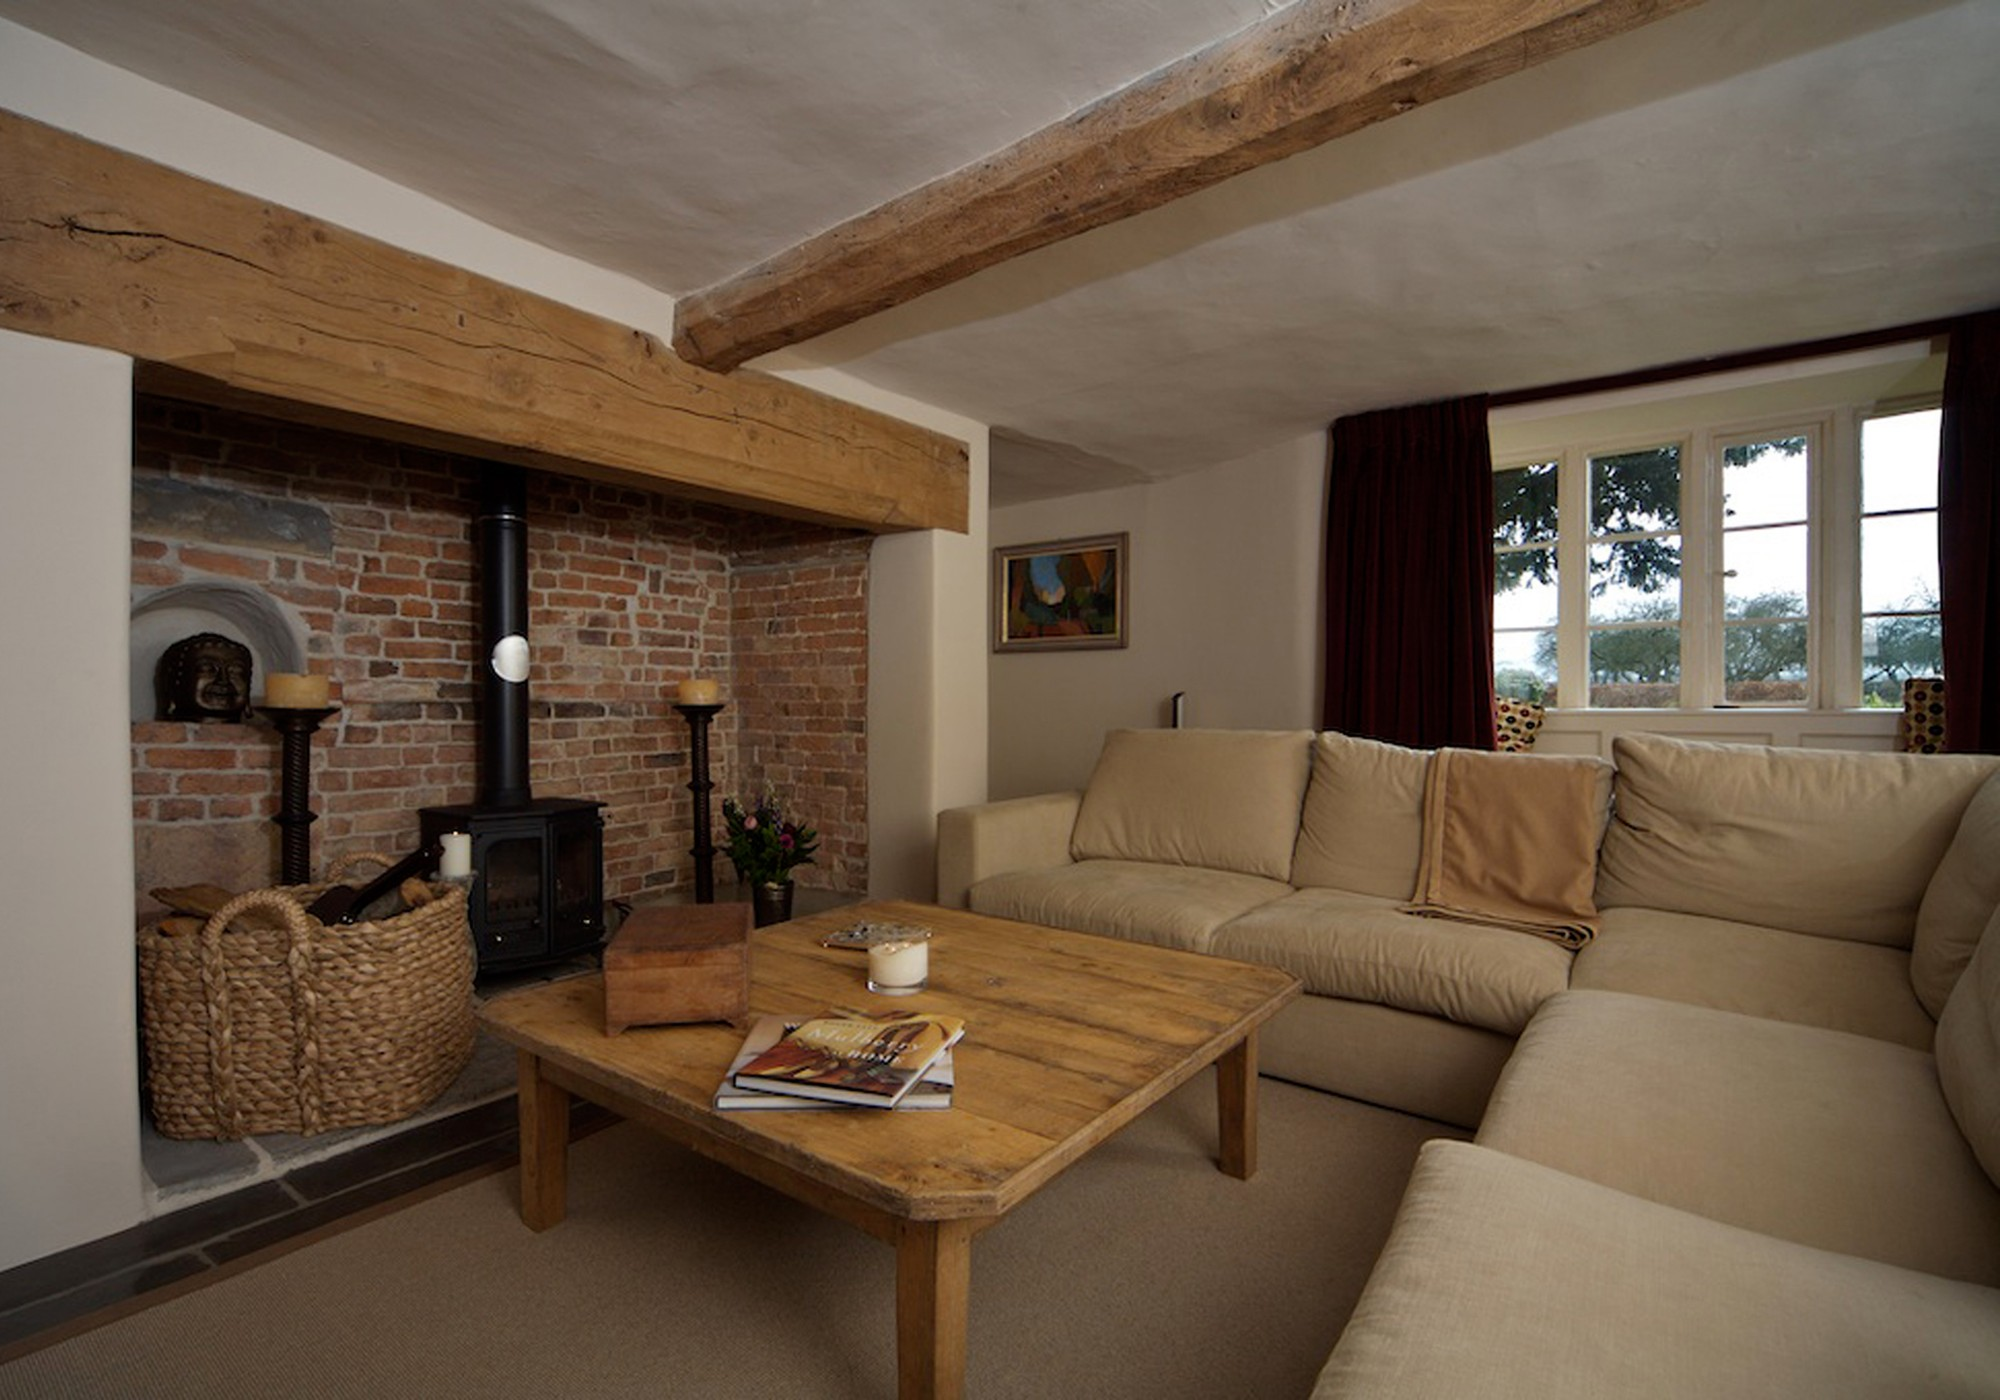 Bushfurlong 17th century farmhouse devon for Interior designs for homes pictures